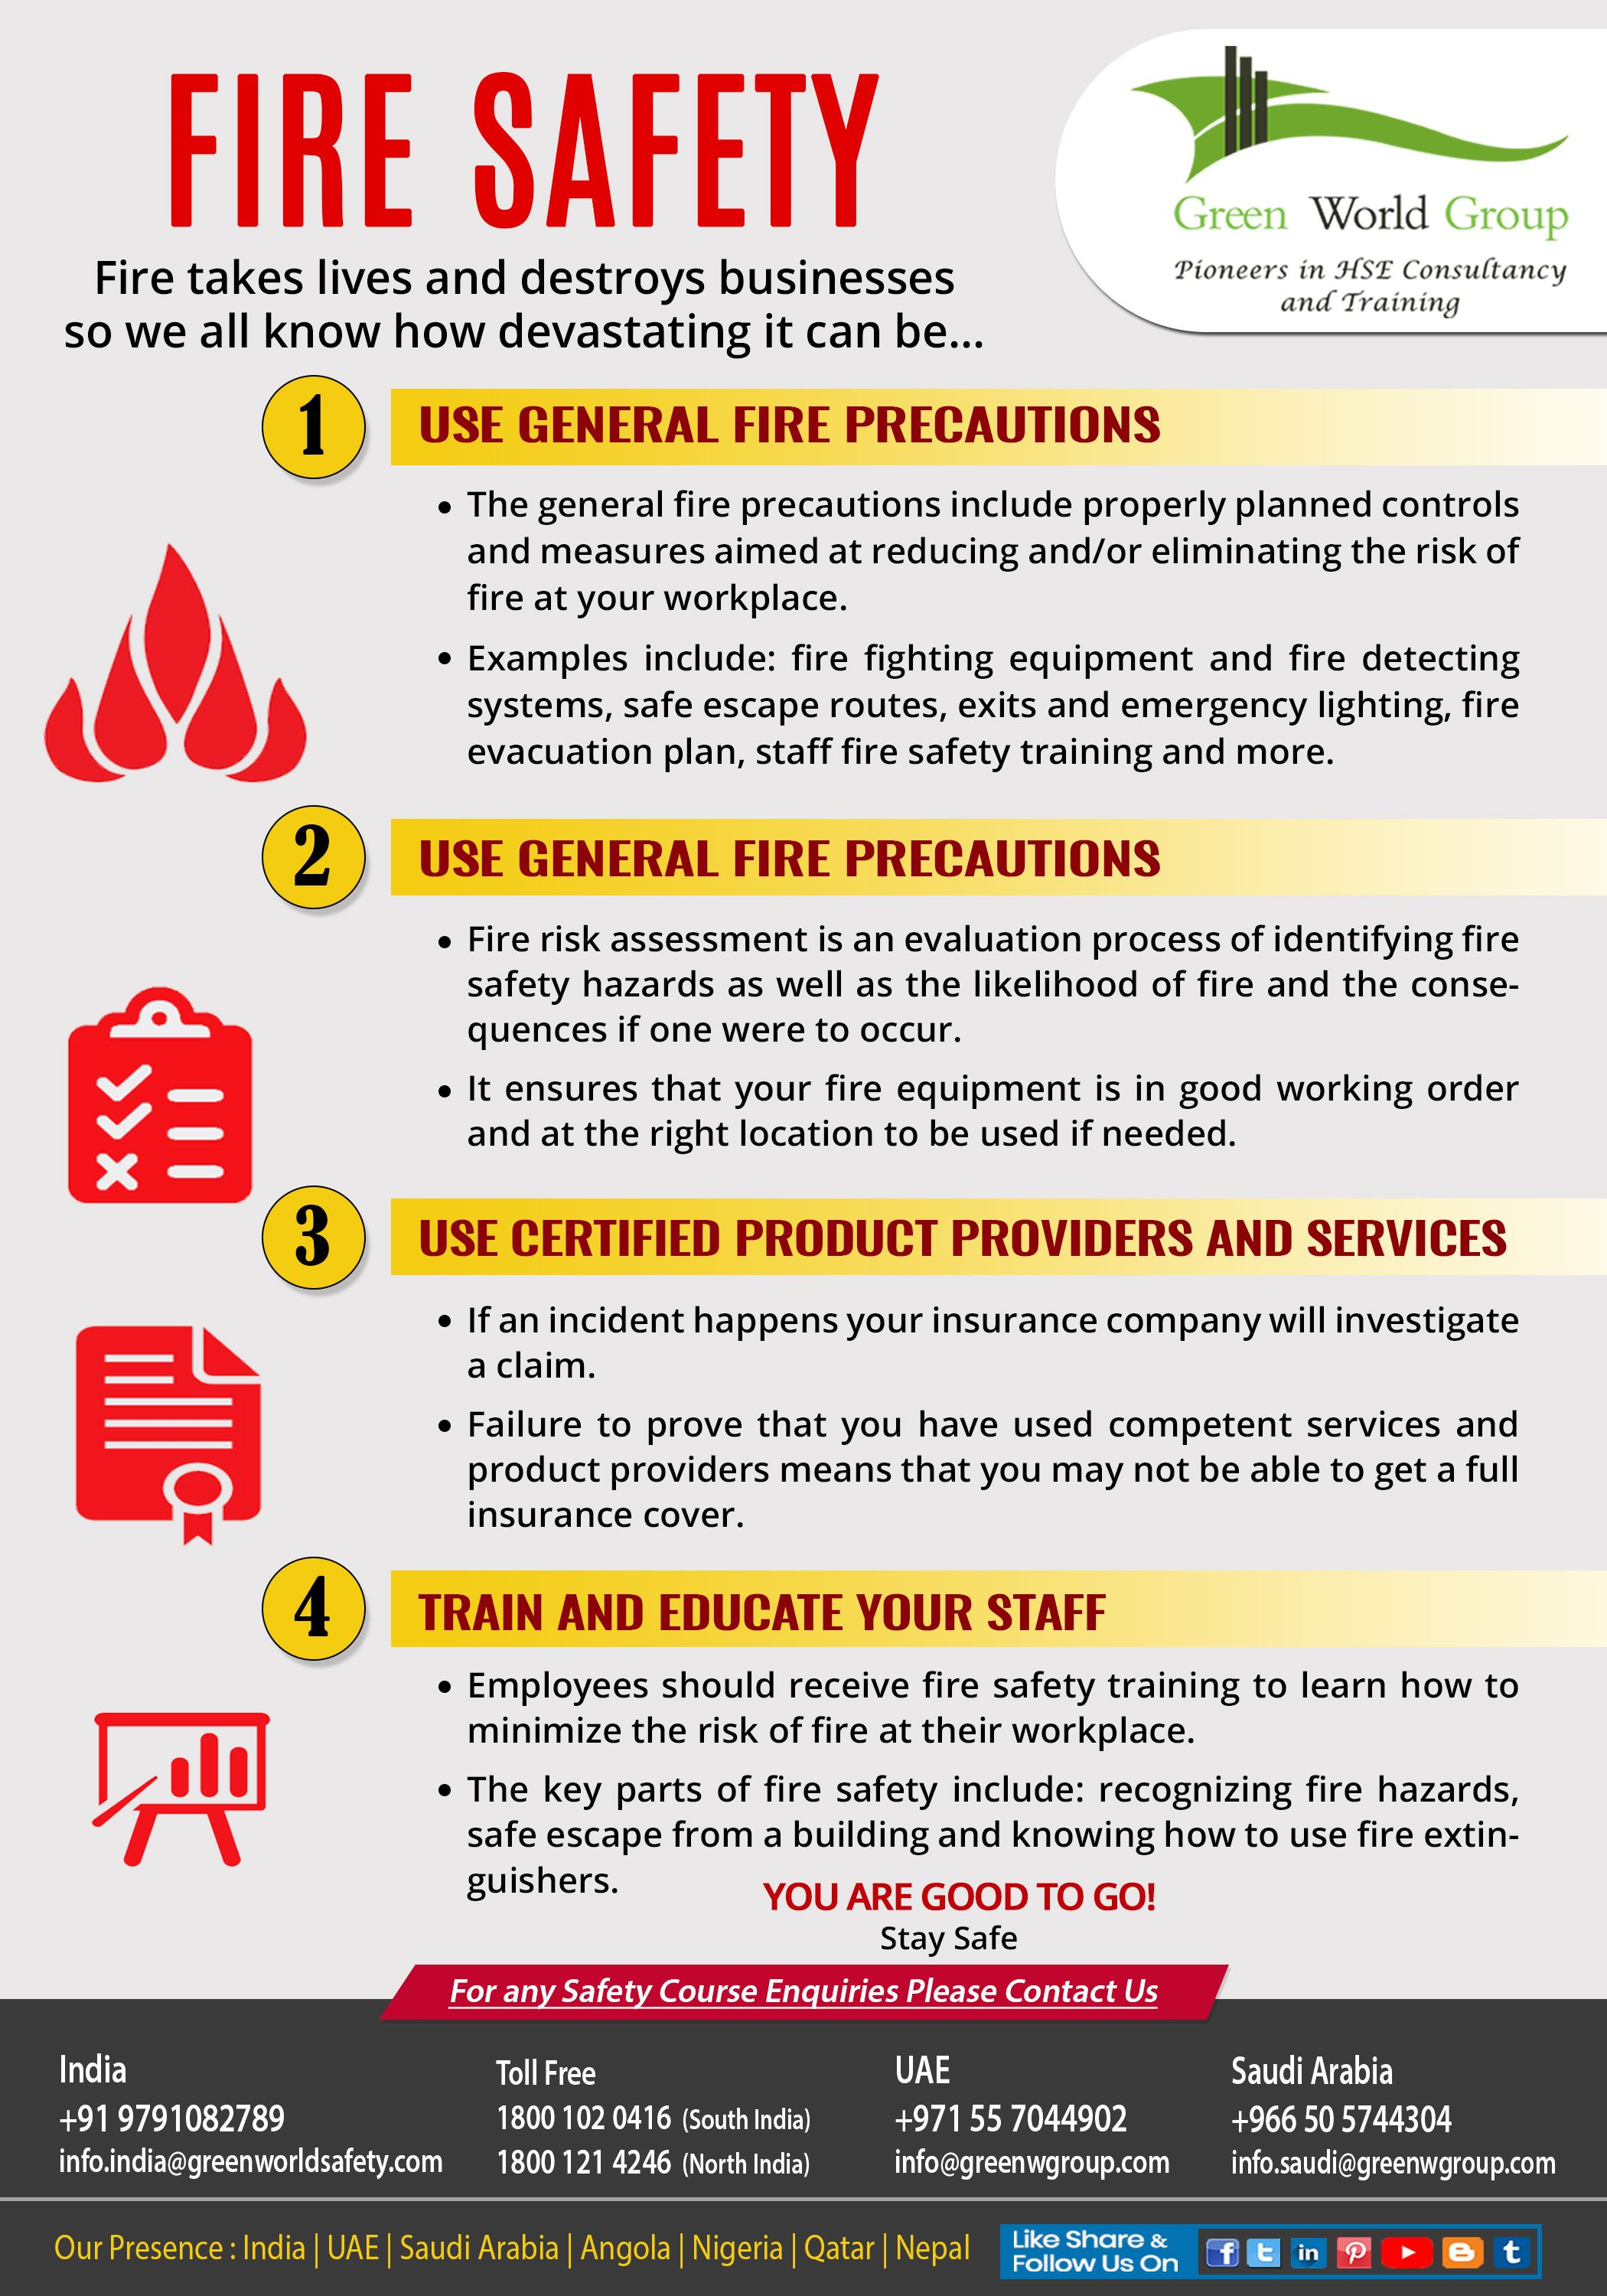 The general fire safety tips that are targeted at the